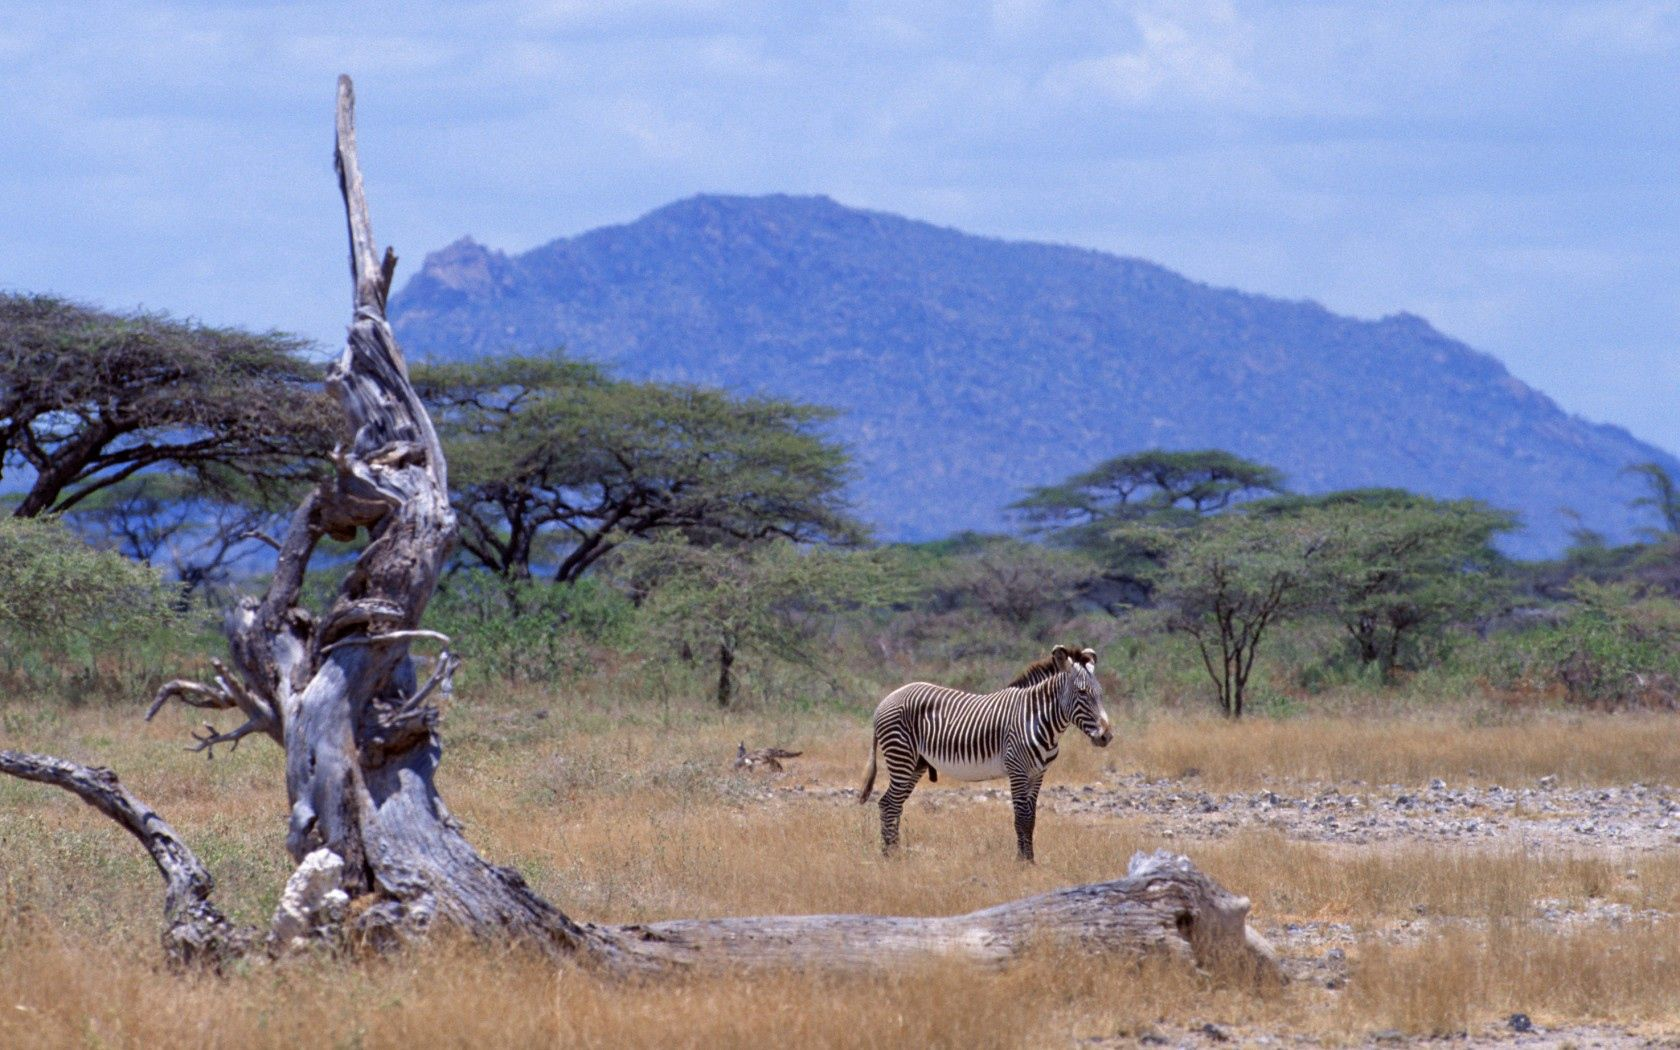 98343 download wallpaper Animals, Africa, Zebra, Savanna, Wood, Tree, Mountain screensavers and pictures for free